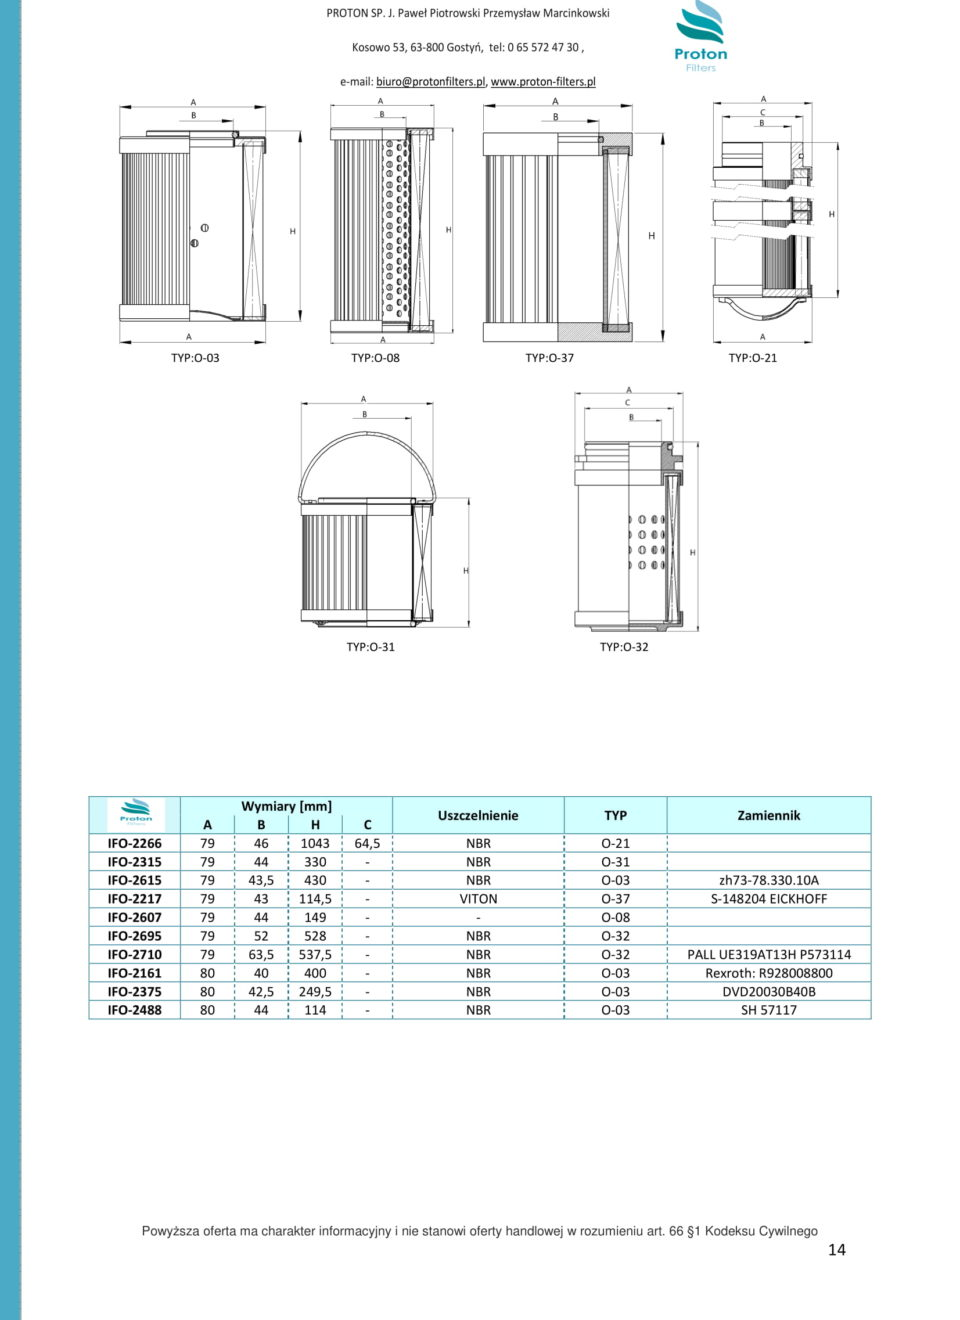 PROTON HYDRAULIC FILTERS-14